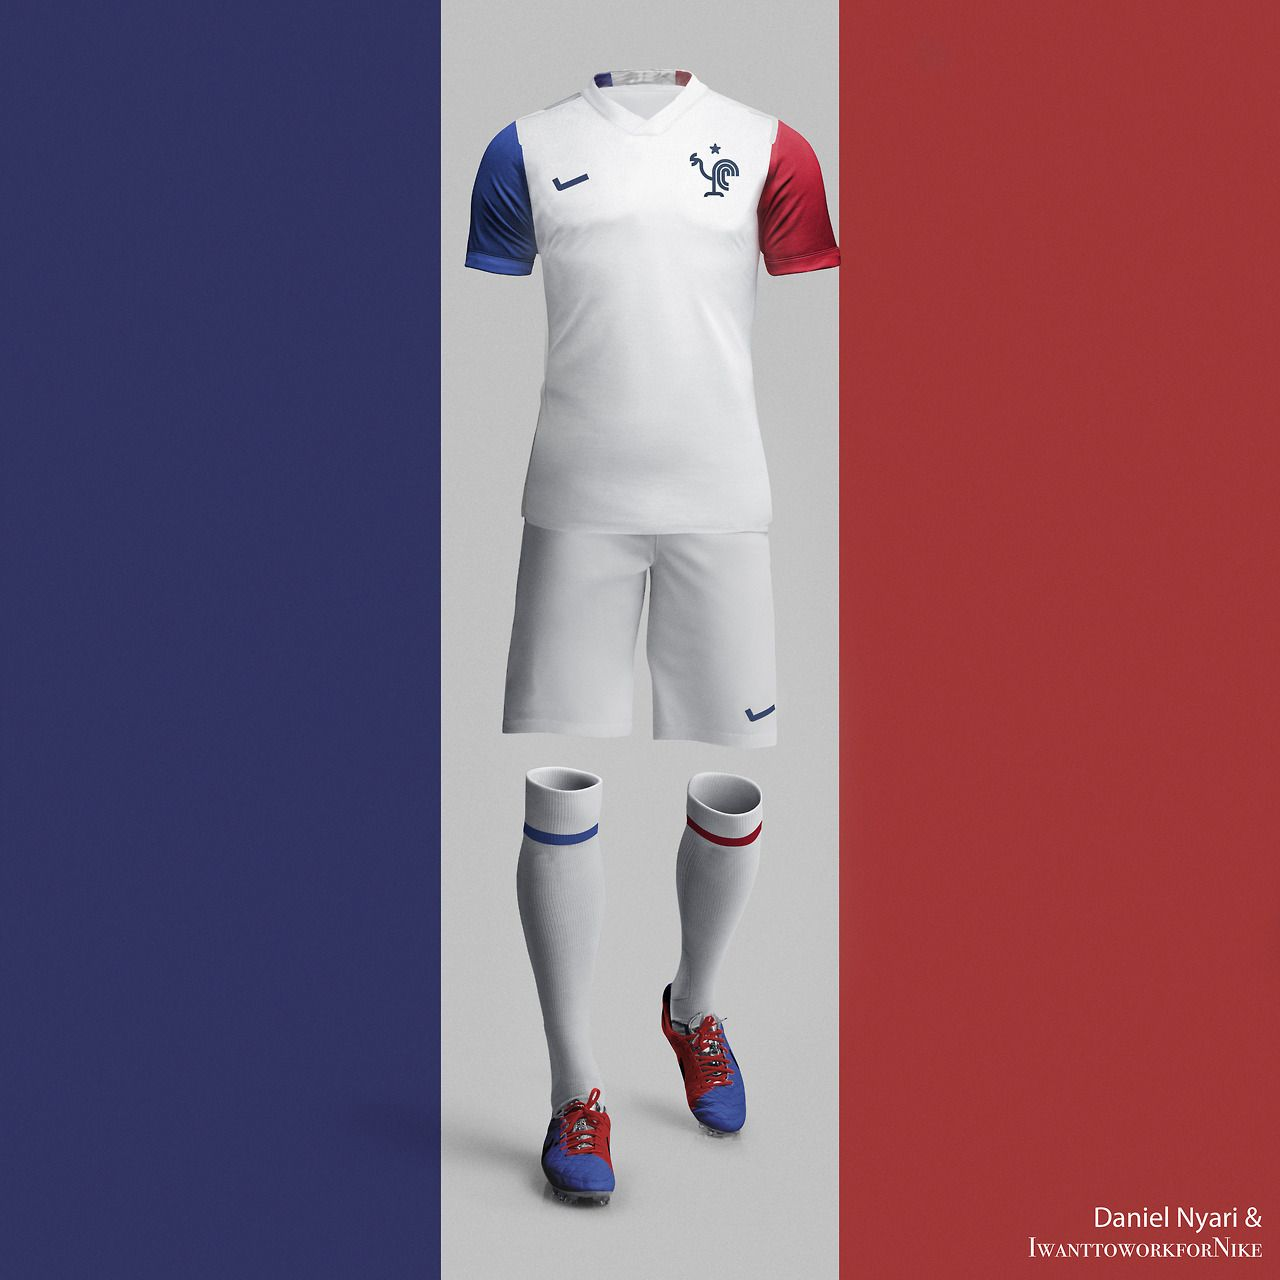 So happy that #France won. And very lucky to cooperate with Mr. @danielnyari using his crest design. Thanks!